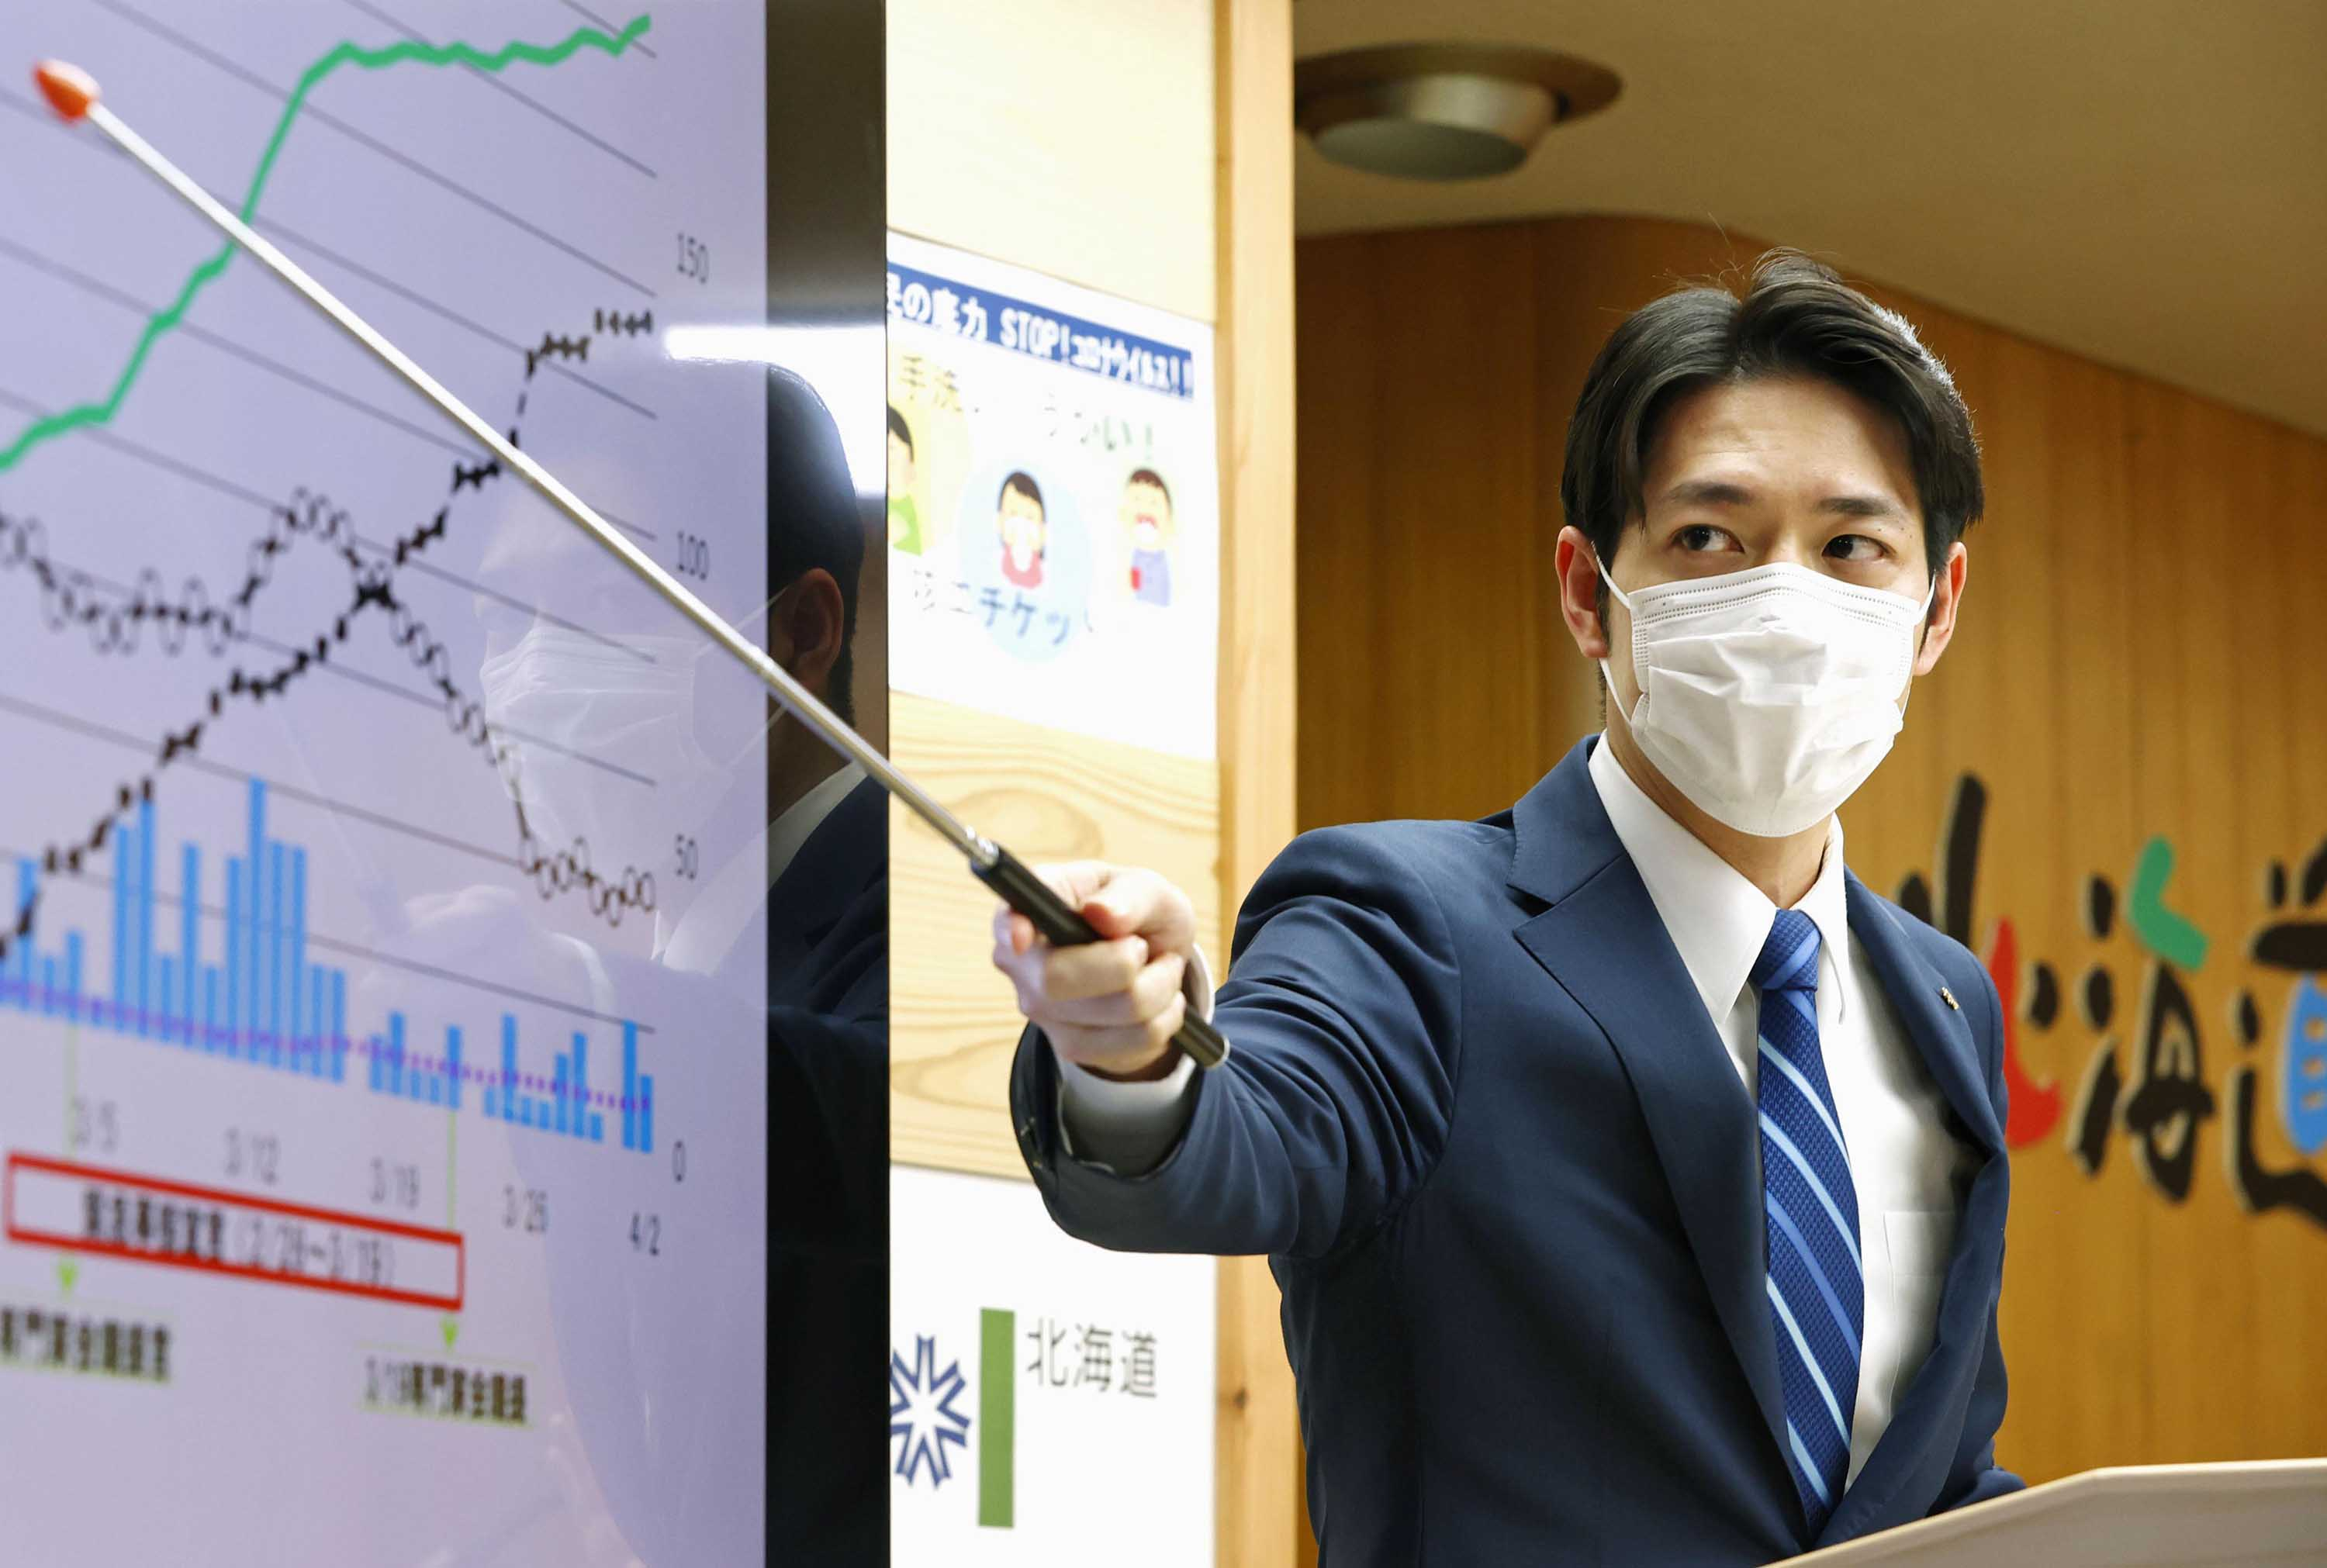 Hokkaido Governor Naomichi Suzuki holds a press conference at his office on April 2.